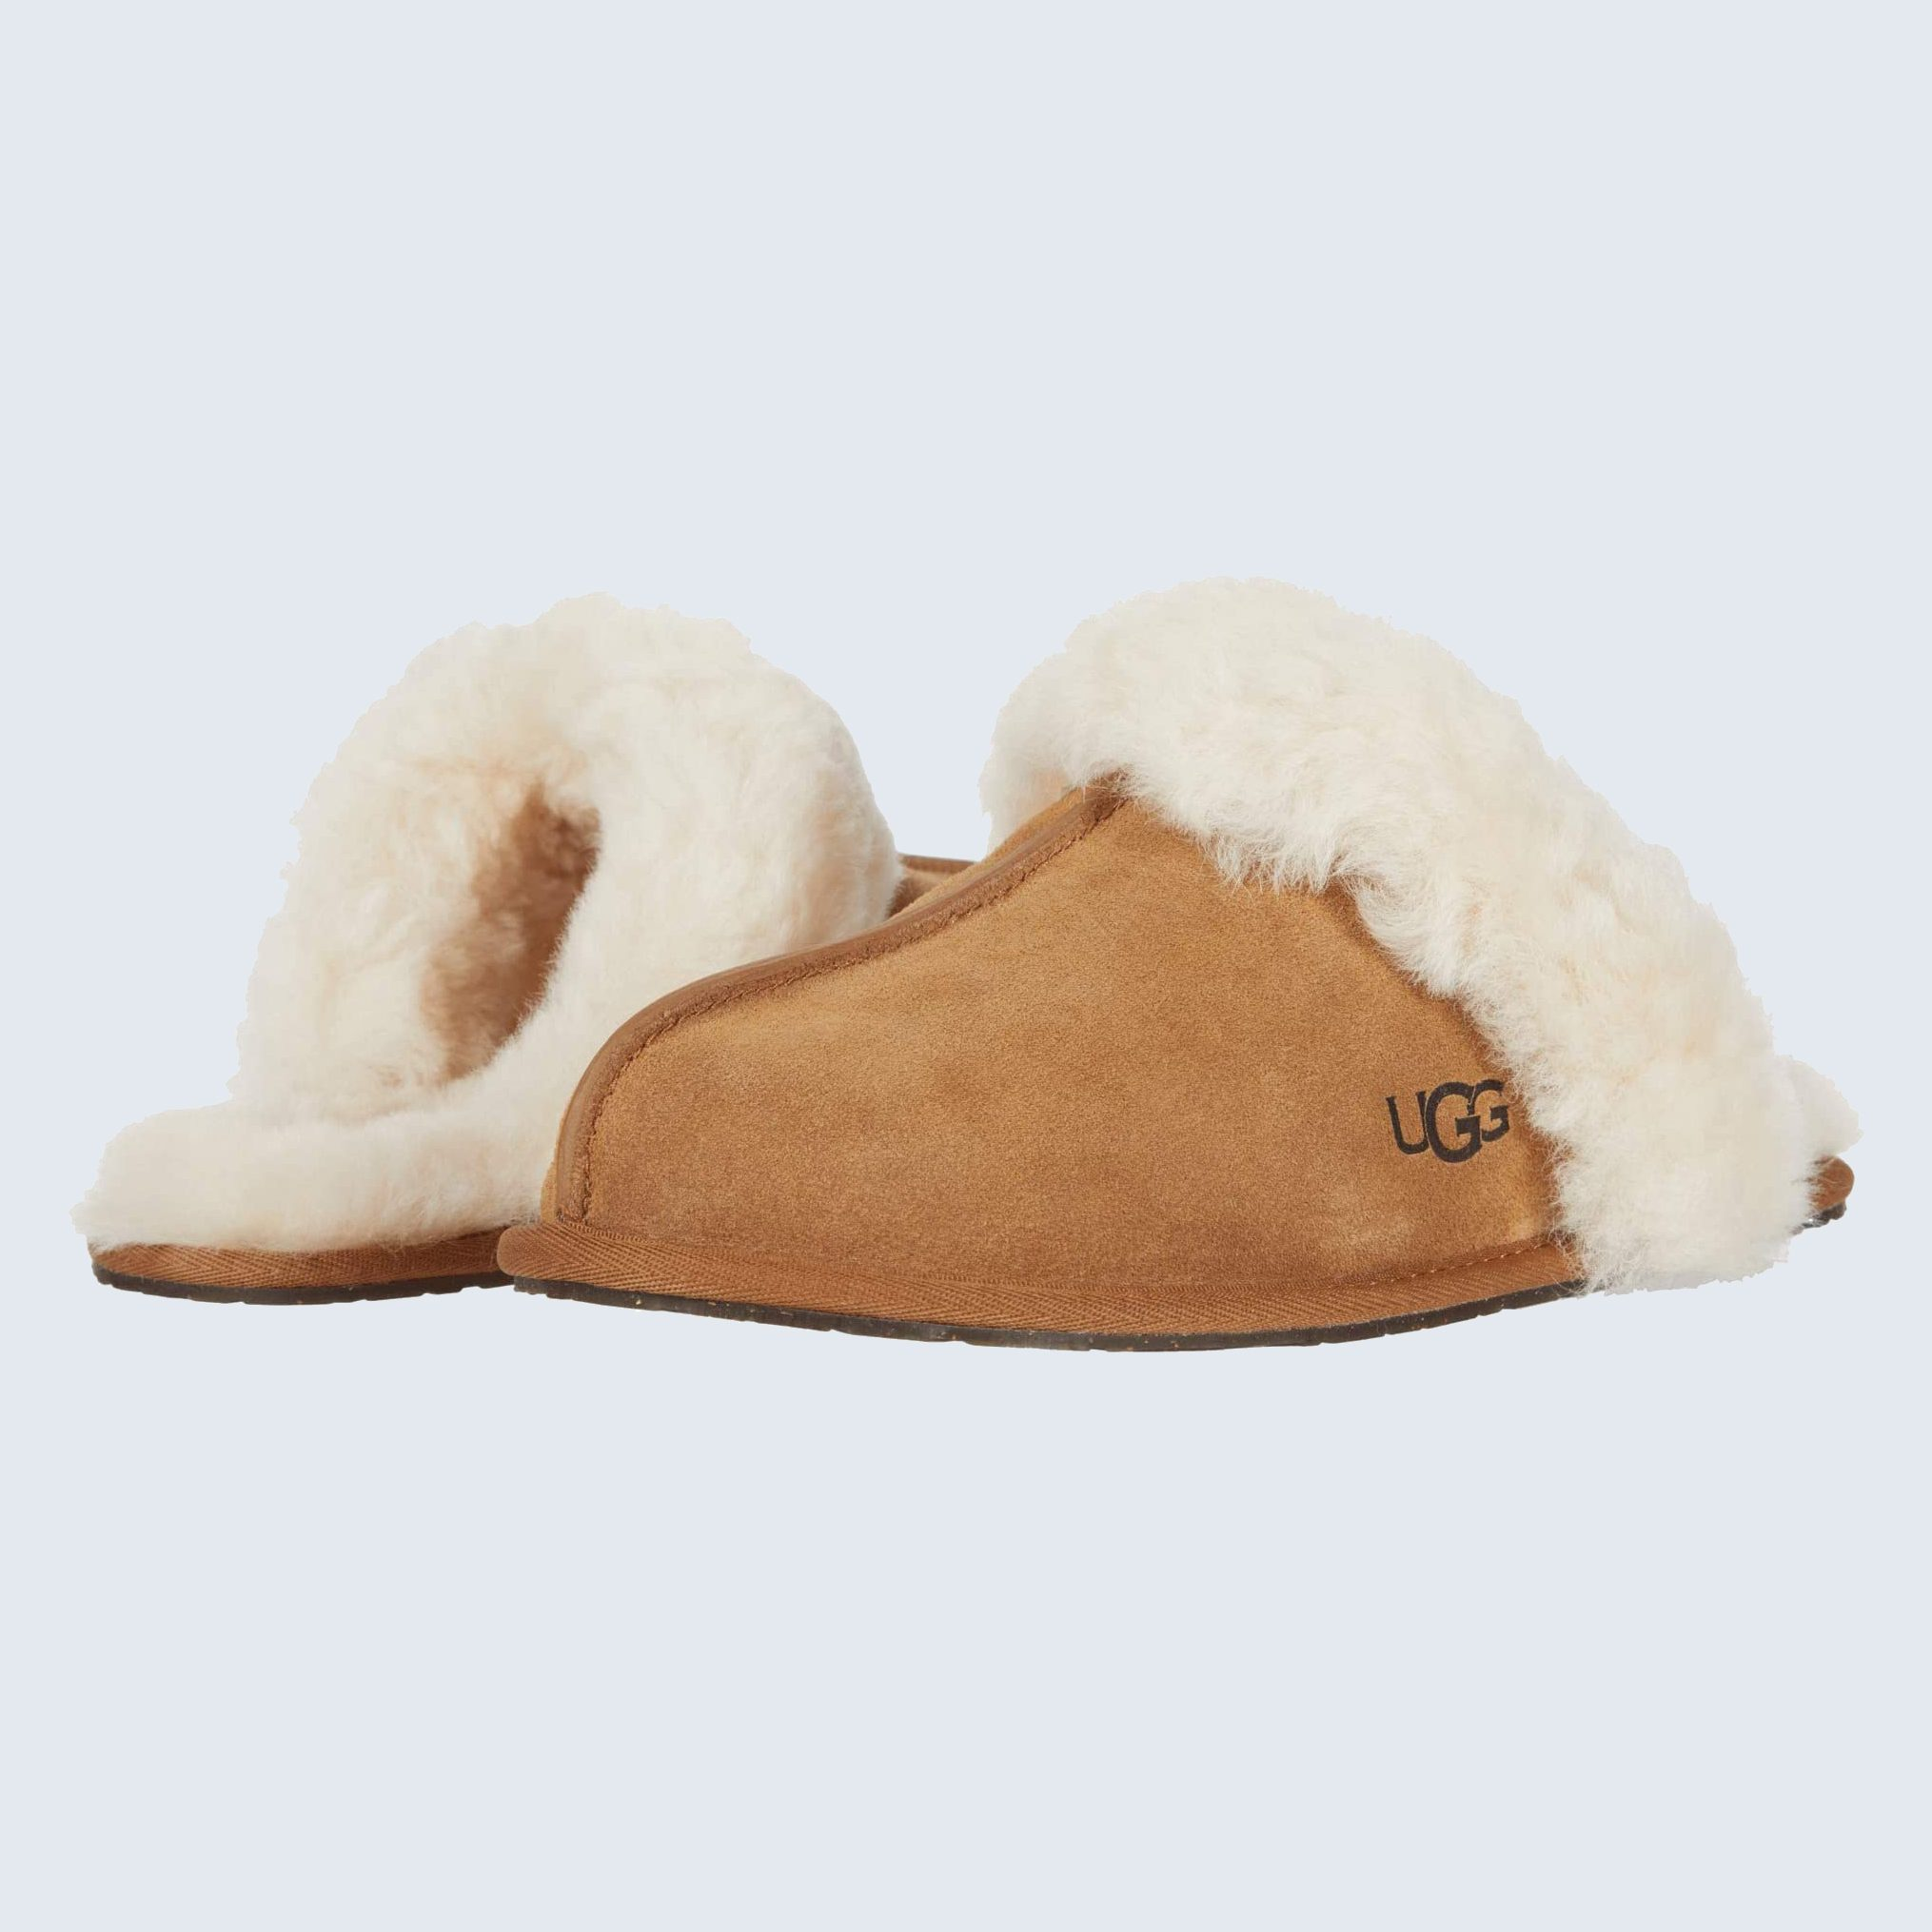 Ugg Scufette II Water-Resistant Slippers